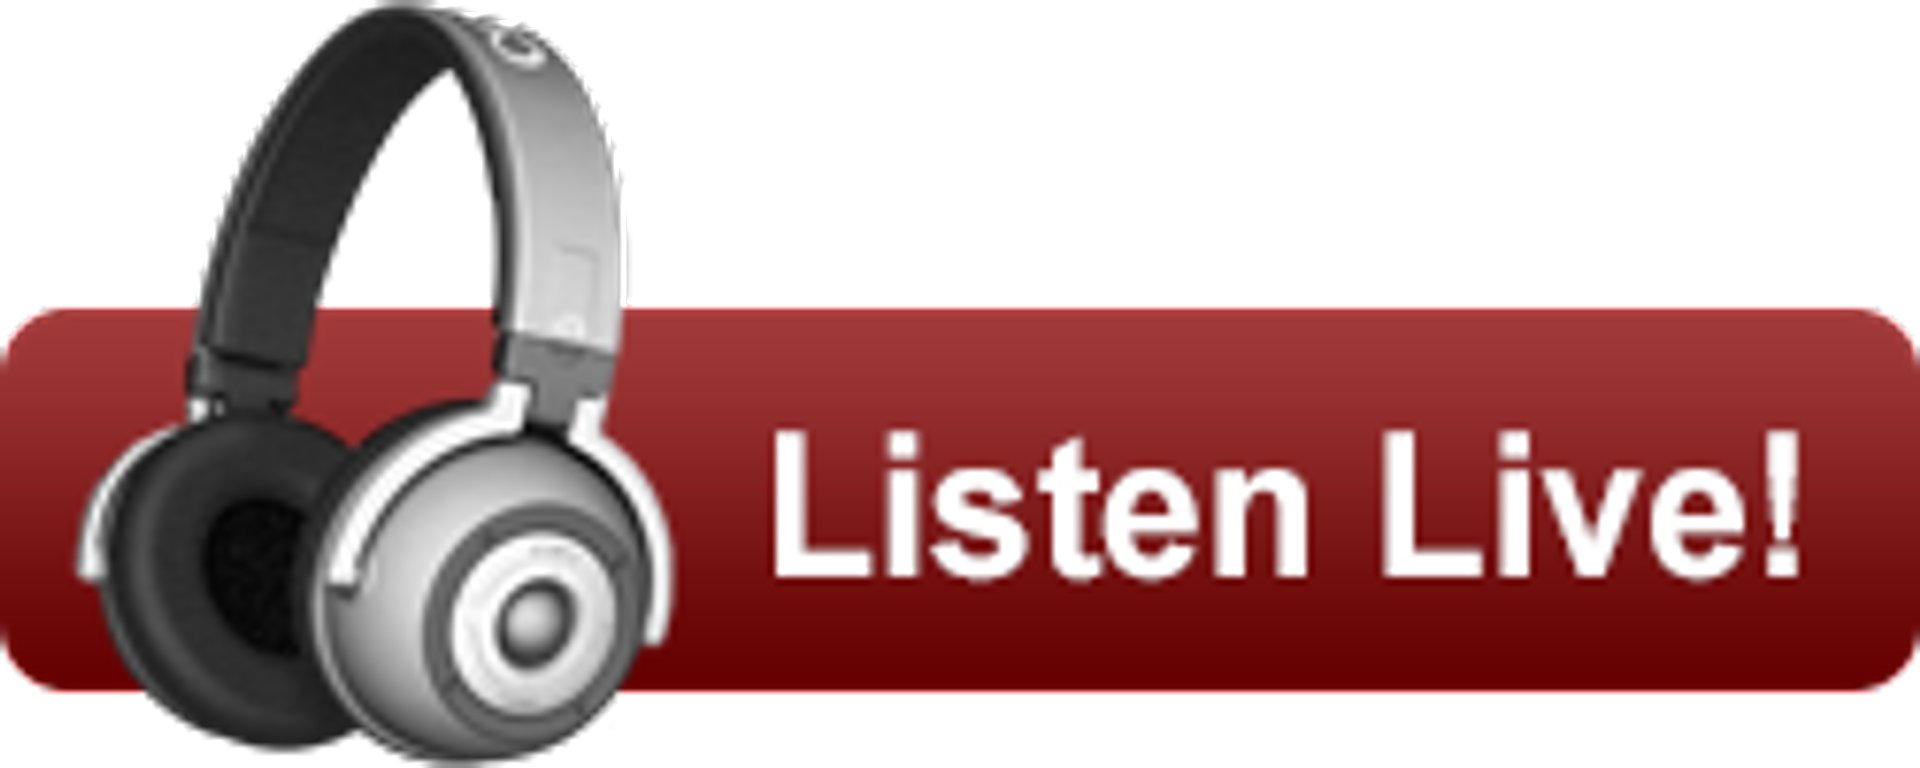 Please Click to listen and request Music